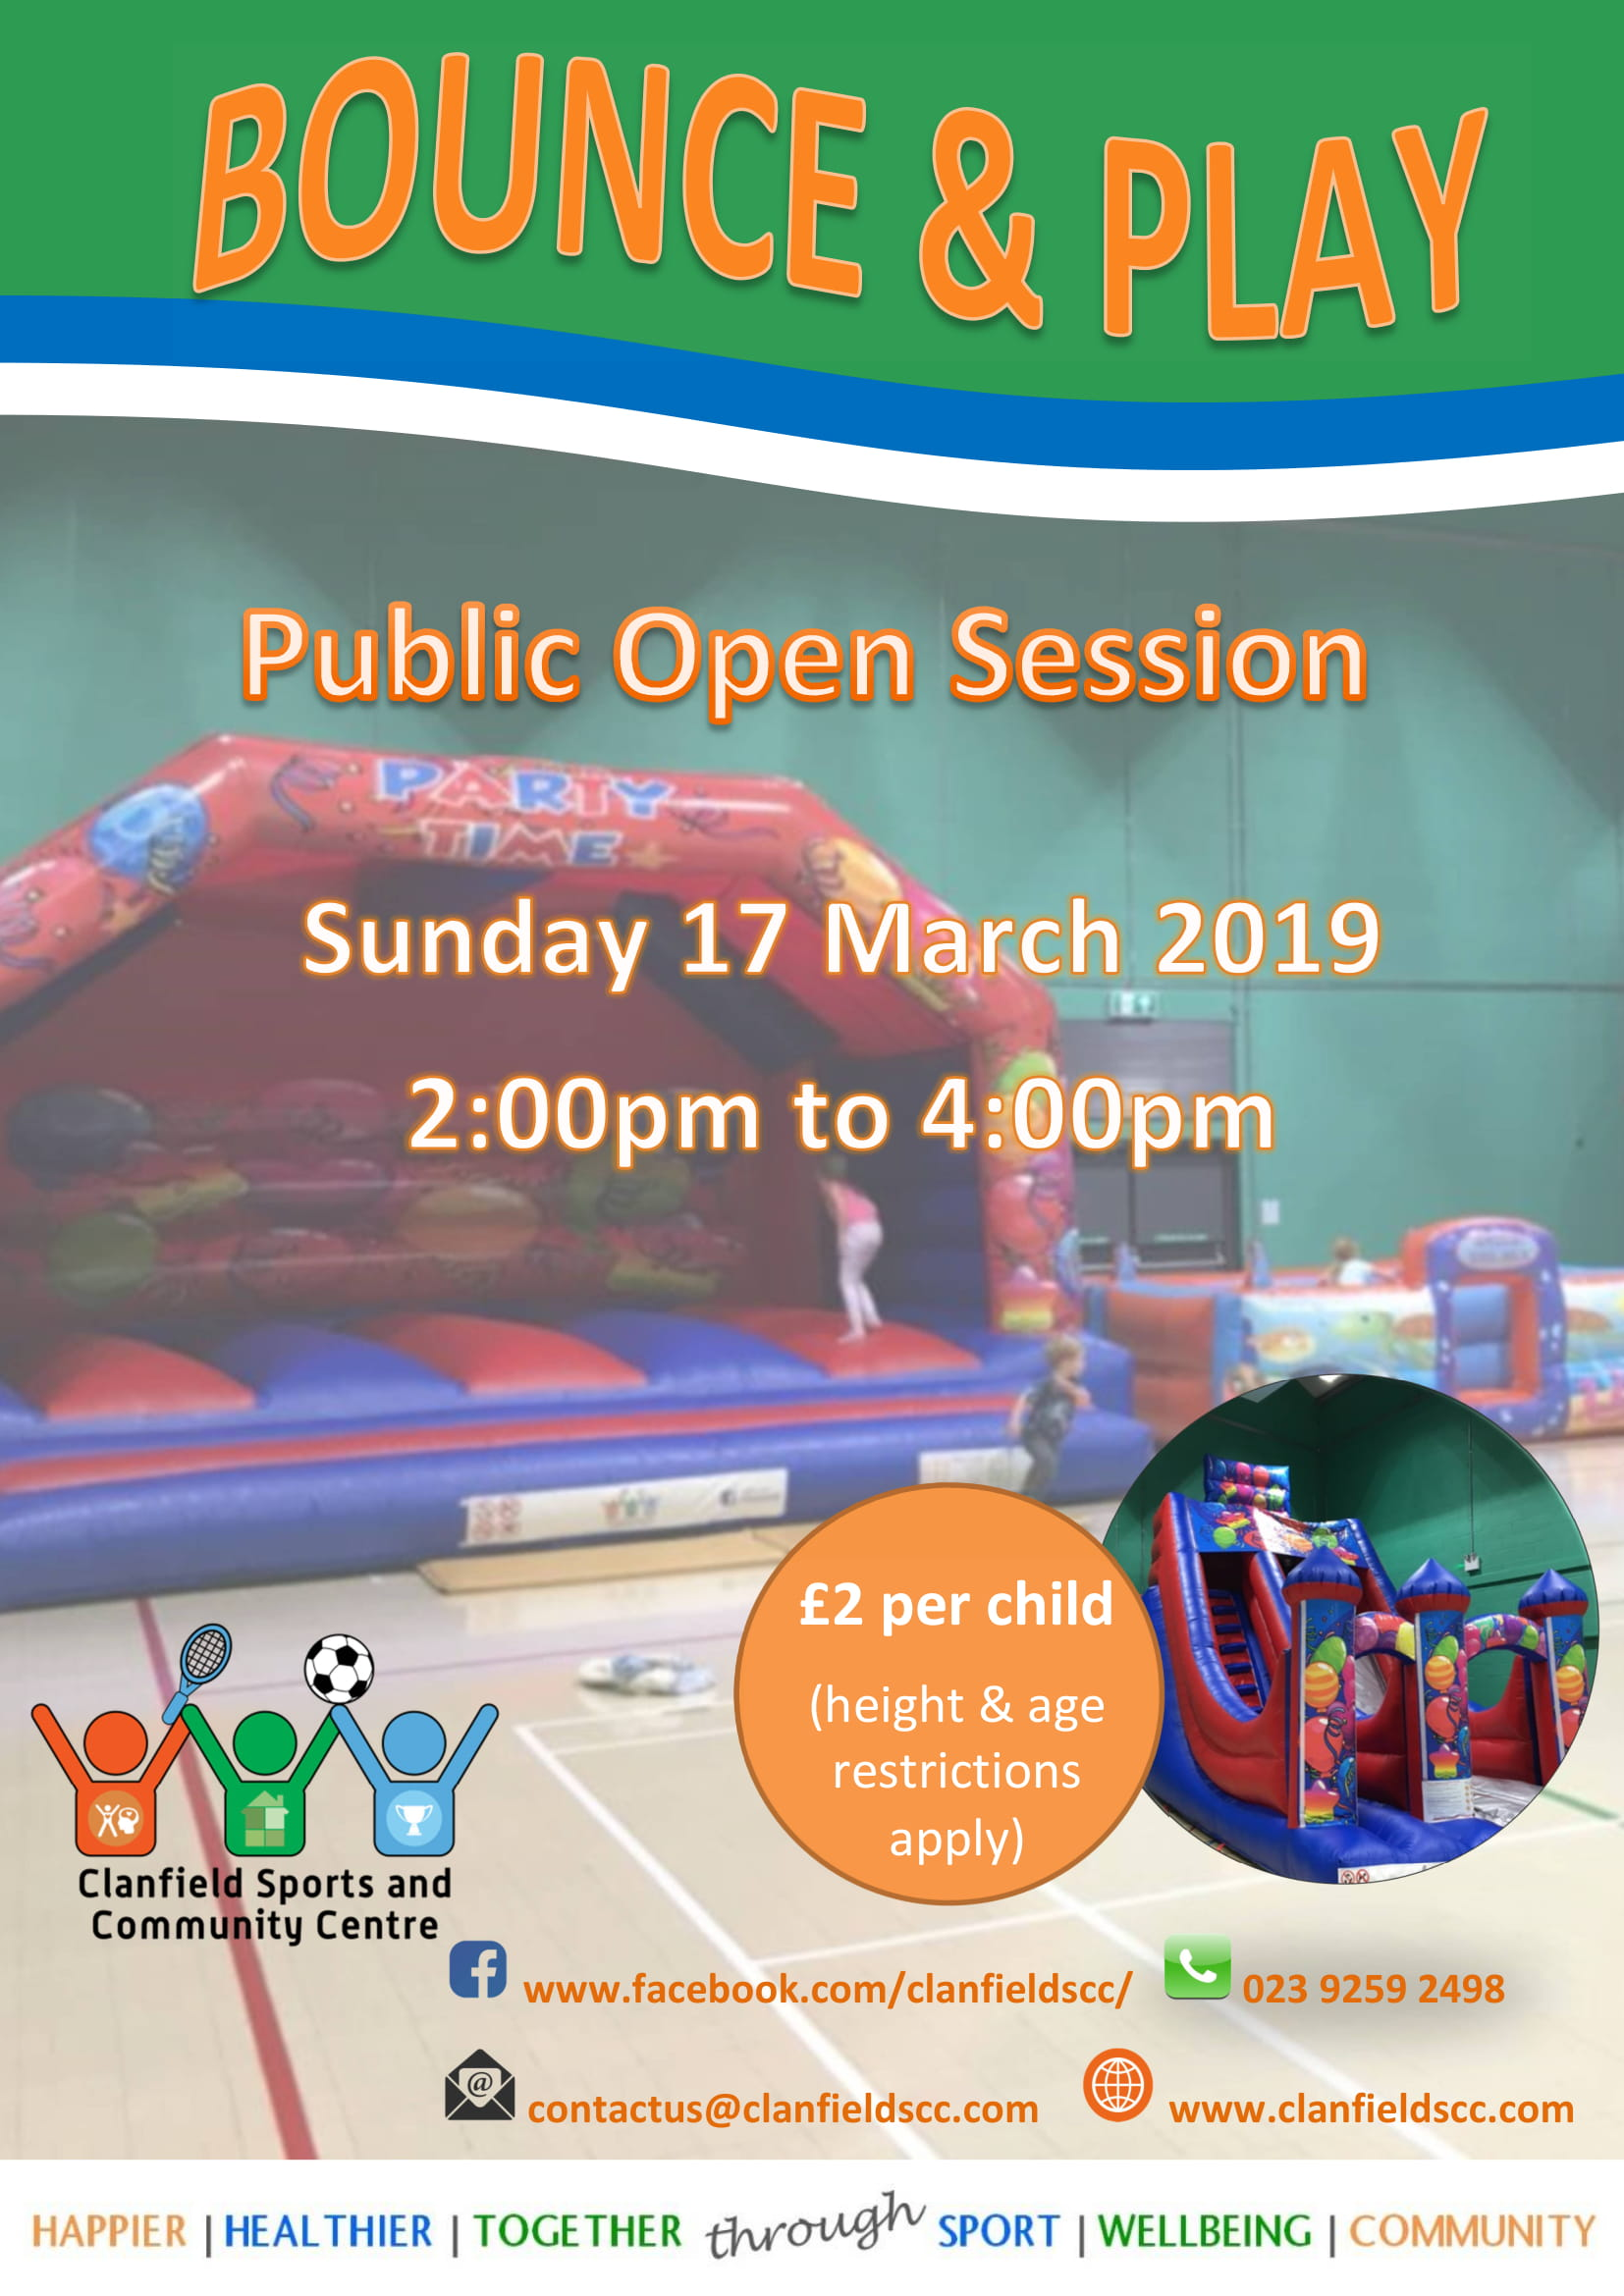 Clanfield Sports and Community Centre Bounce & Play